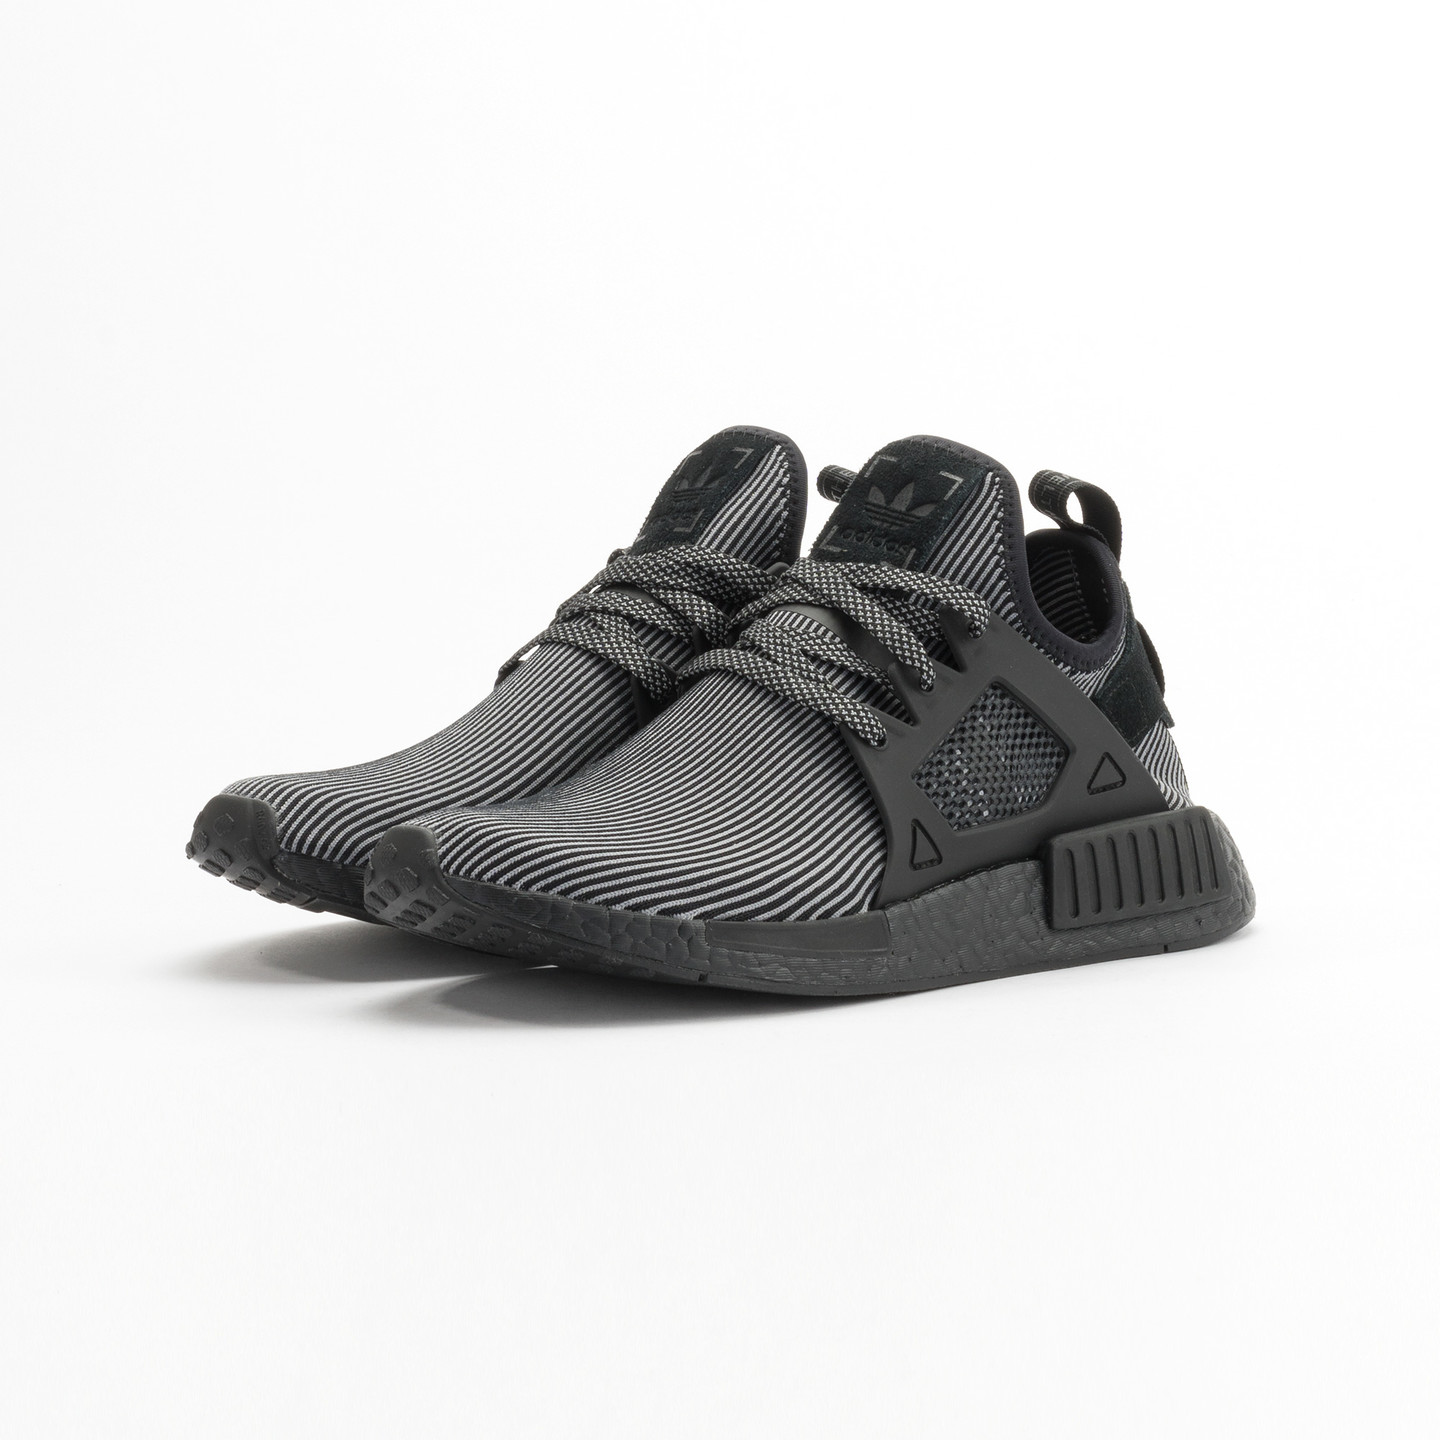 Adidas NMD XR1 Primeknit Core Black / Core Black / Running White S32211-41.33